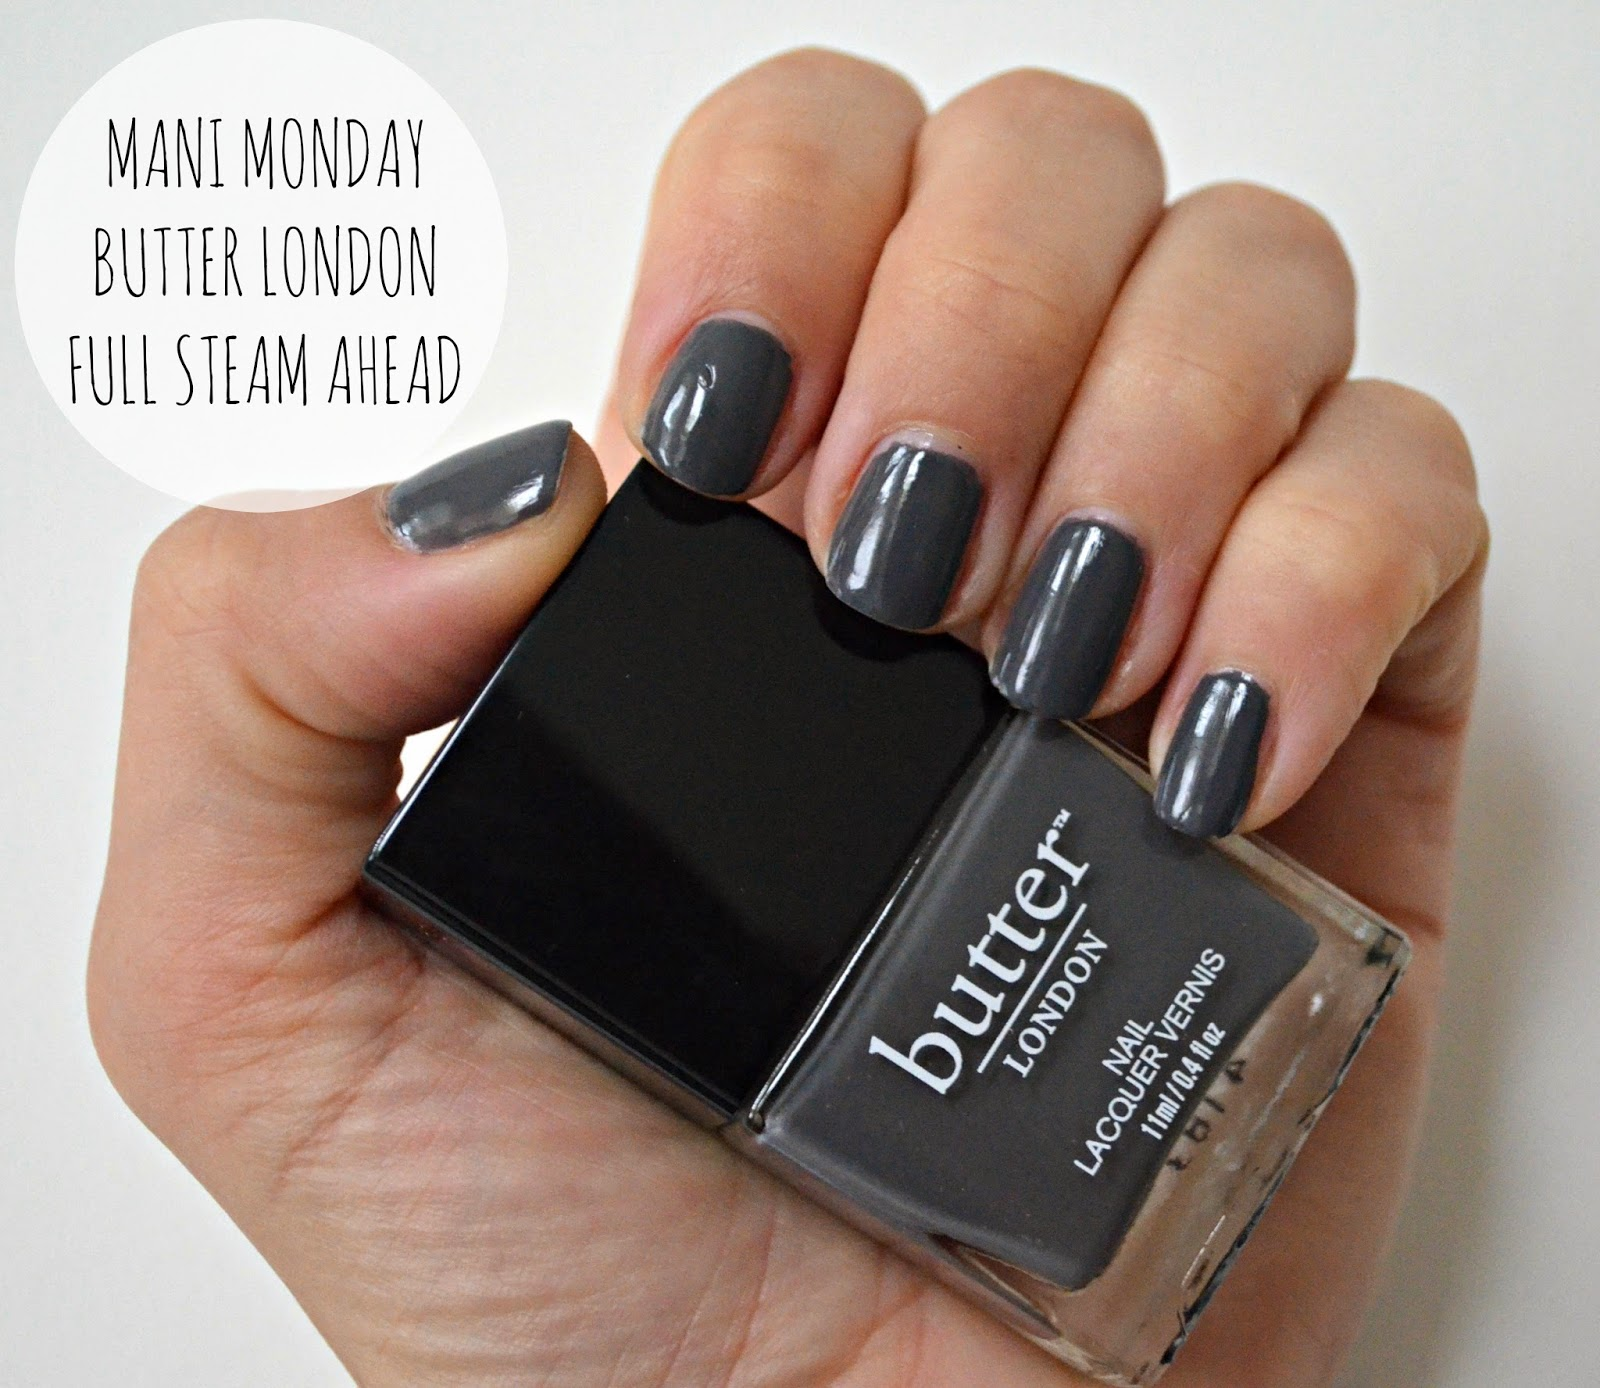 BUTTER LONDON FULL STEAM AHEAD